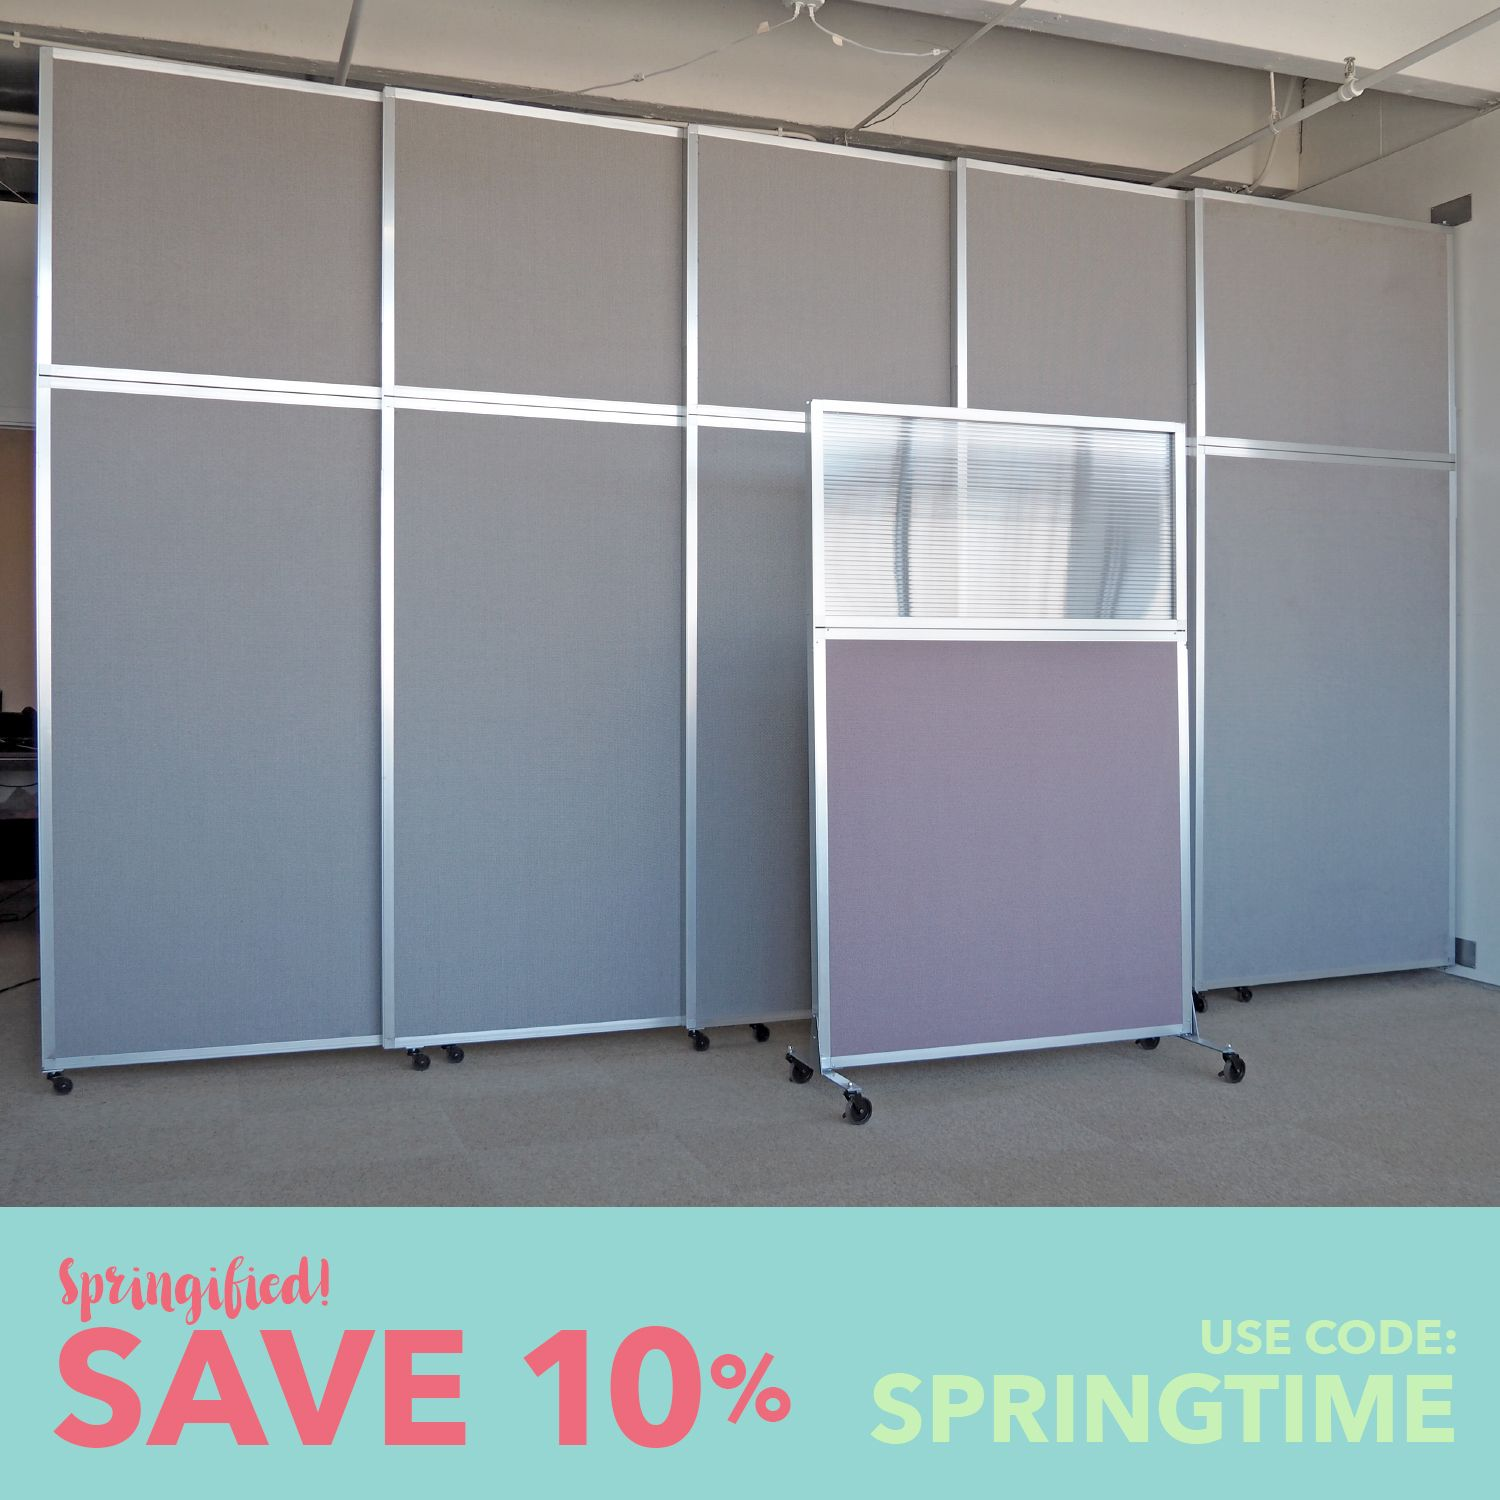 Repurpose your office or retail space with an extra large room